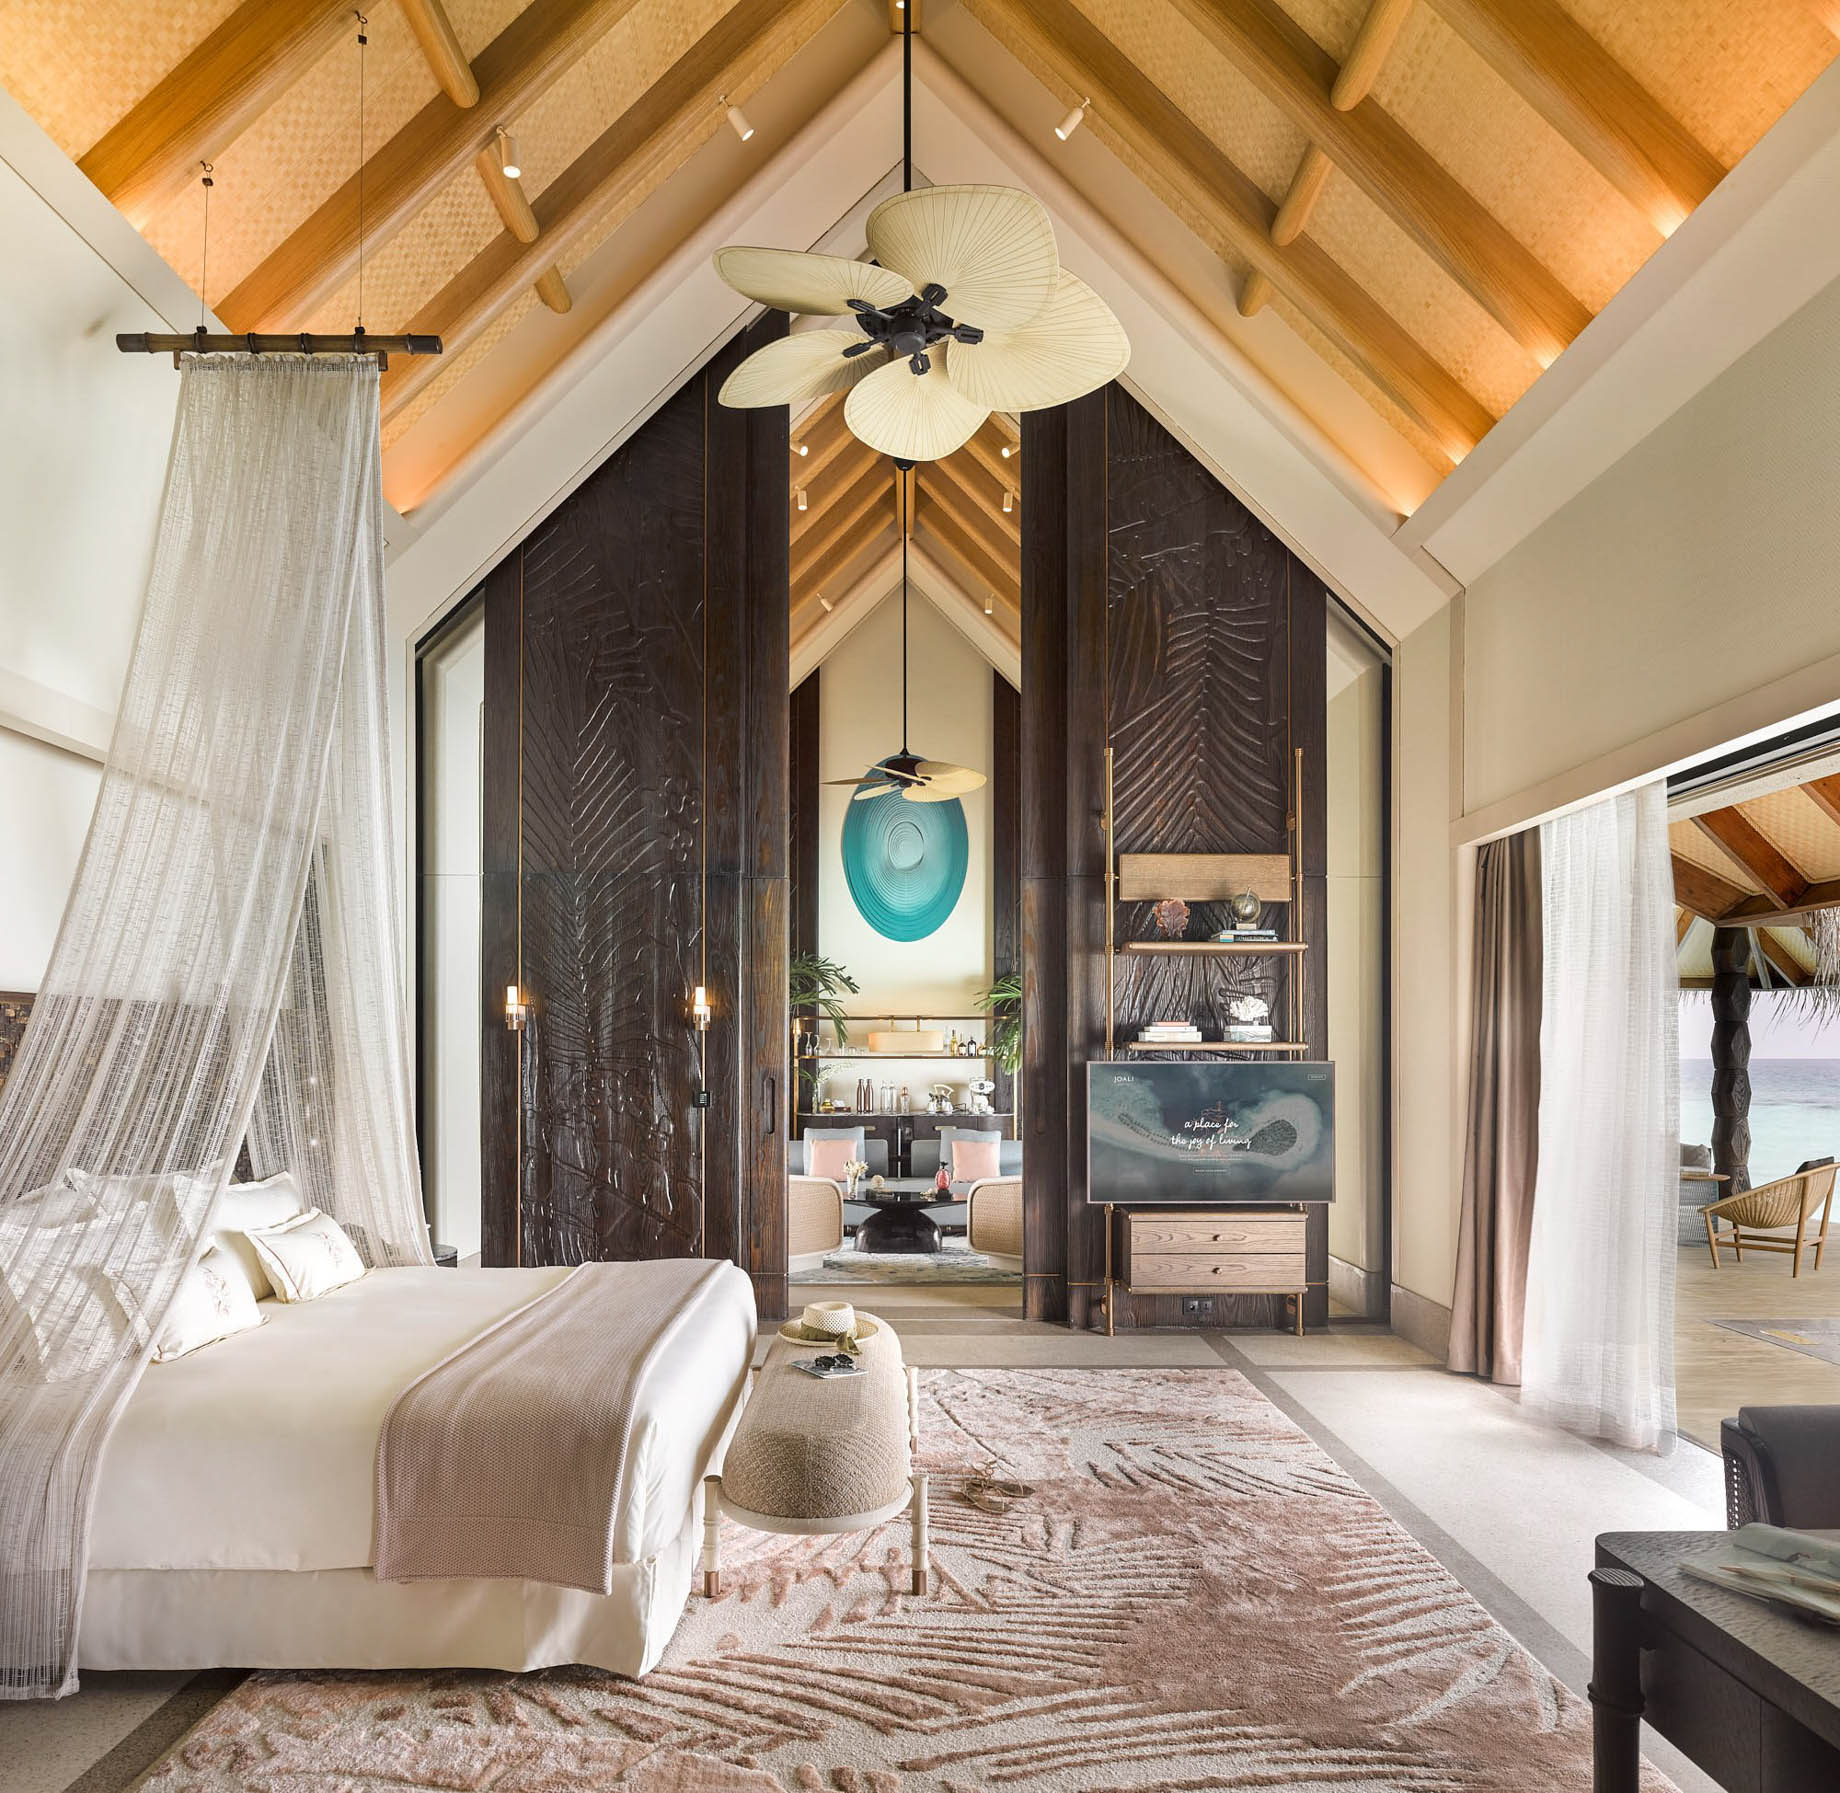 Joali Maldives Luxury Resort - Muravandhoo Island, Maldives - Water Villa Master Bedroom